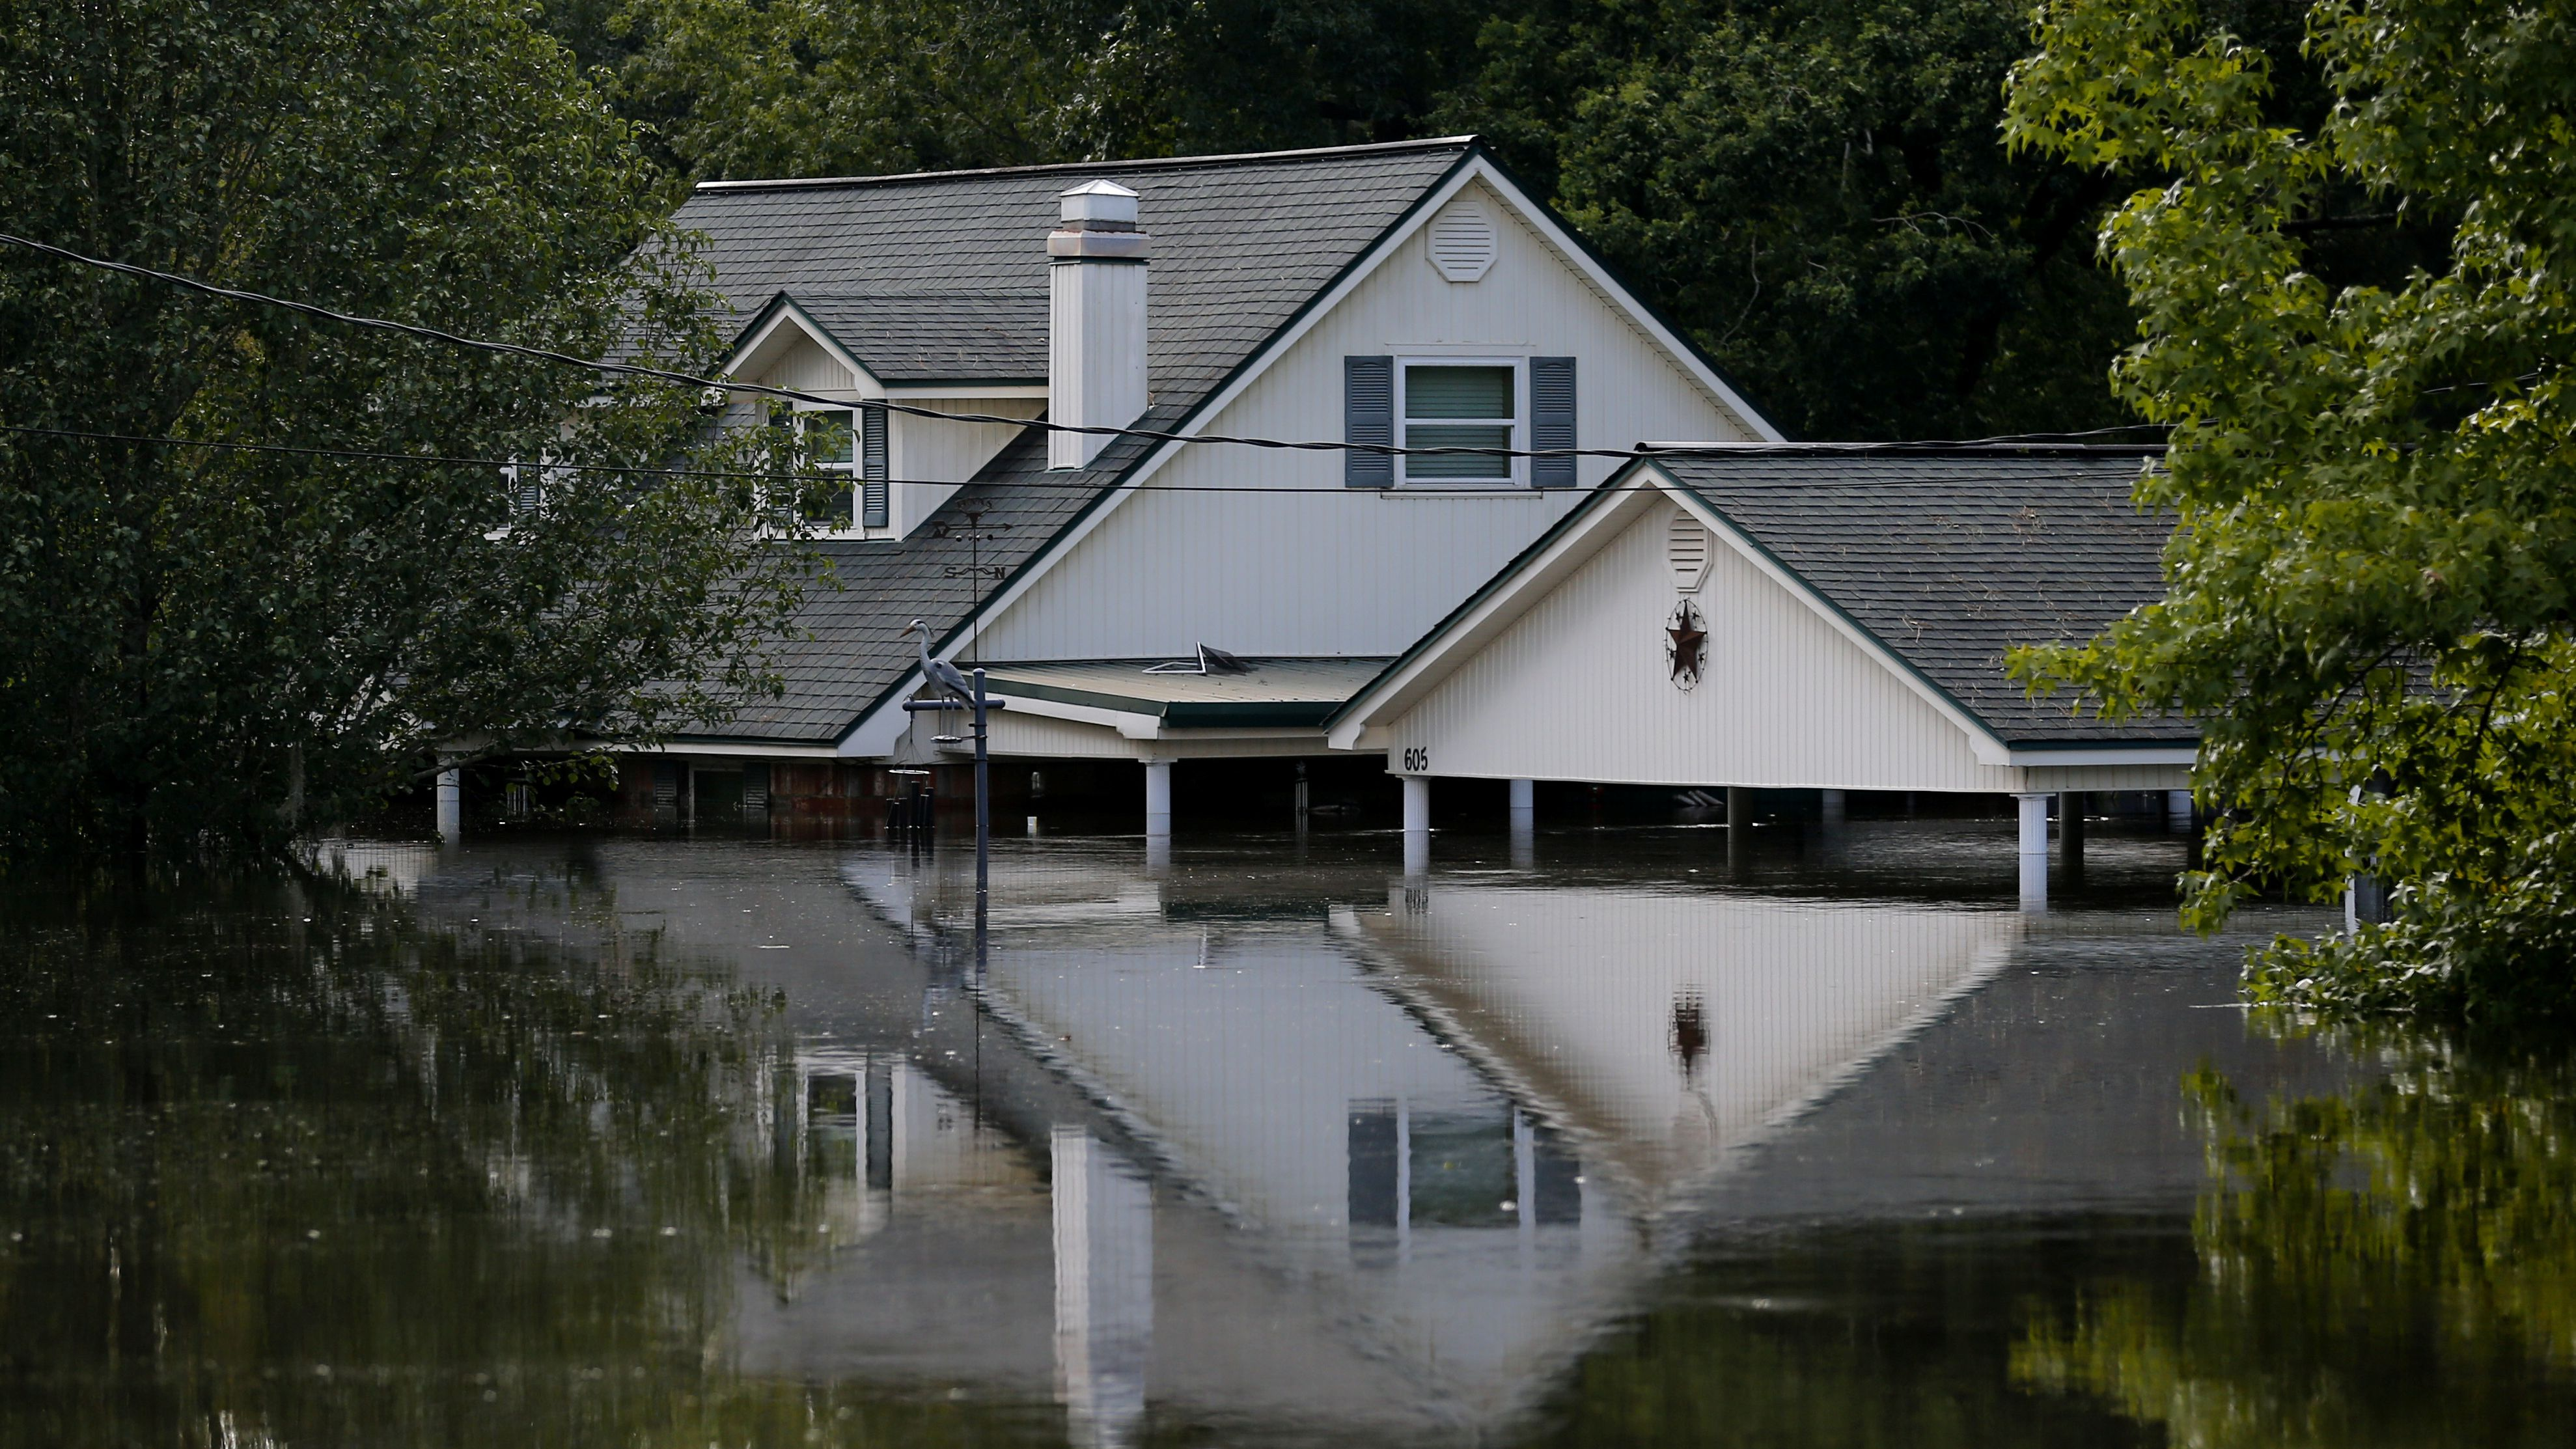 A submerged house by flood waters from Tropical Storm Harvey in Rose City, Texas, U.S., on August 31, 2017.